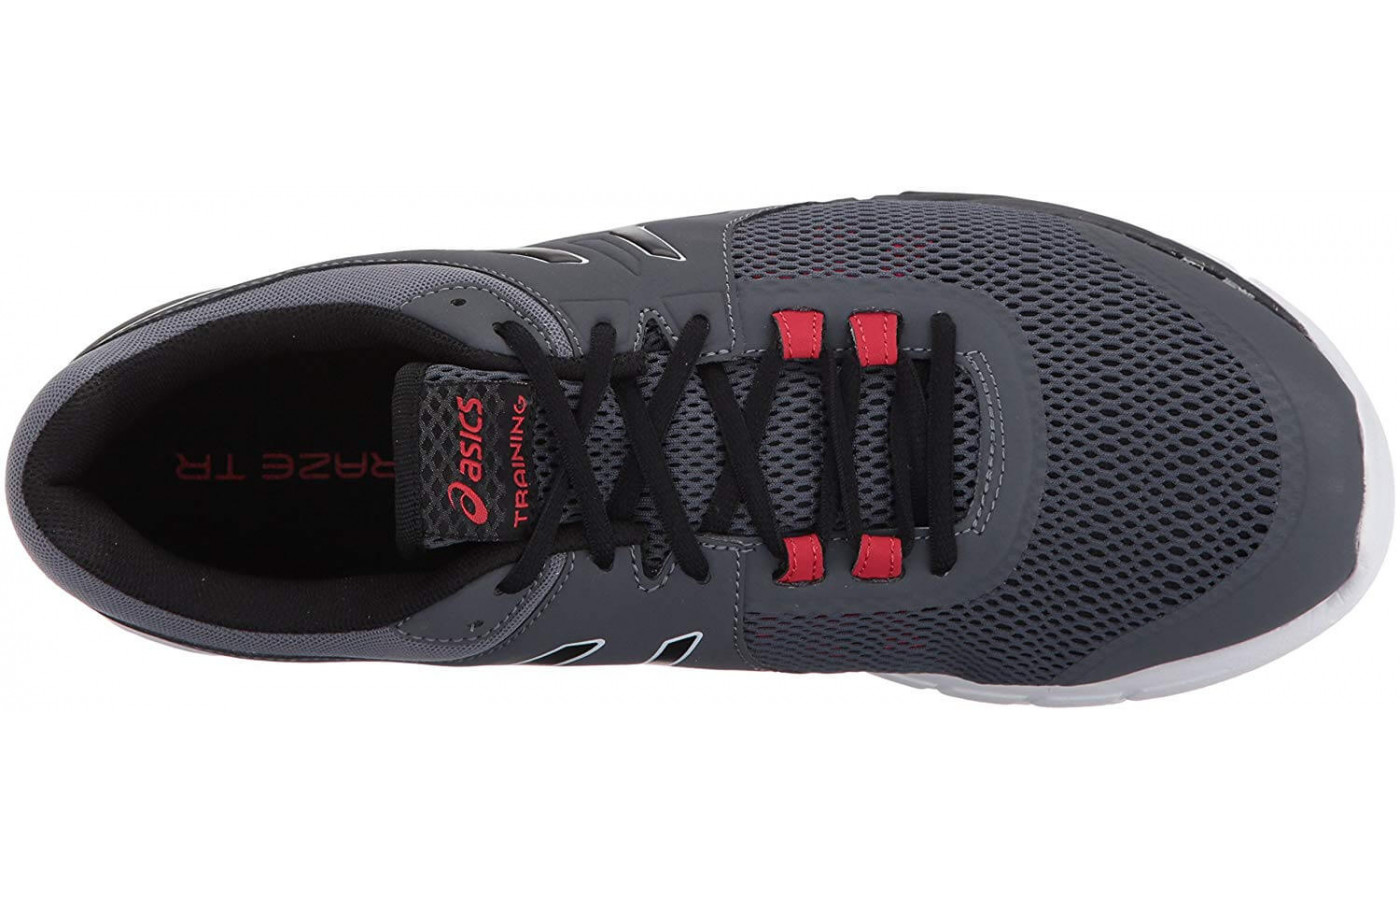 Open mesh and synthetic material give the Gel Craze TR 4 a secure yet breathable fit